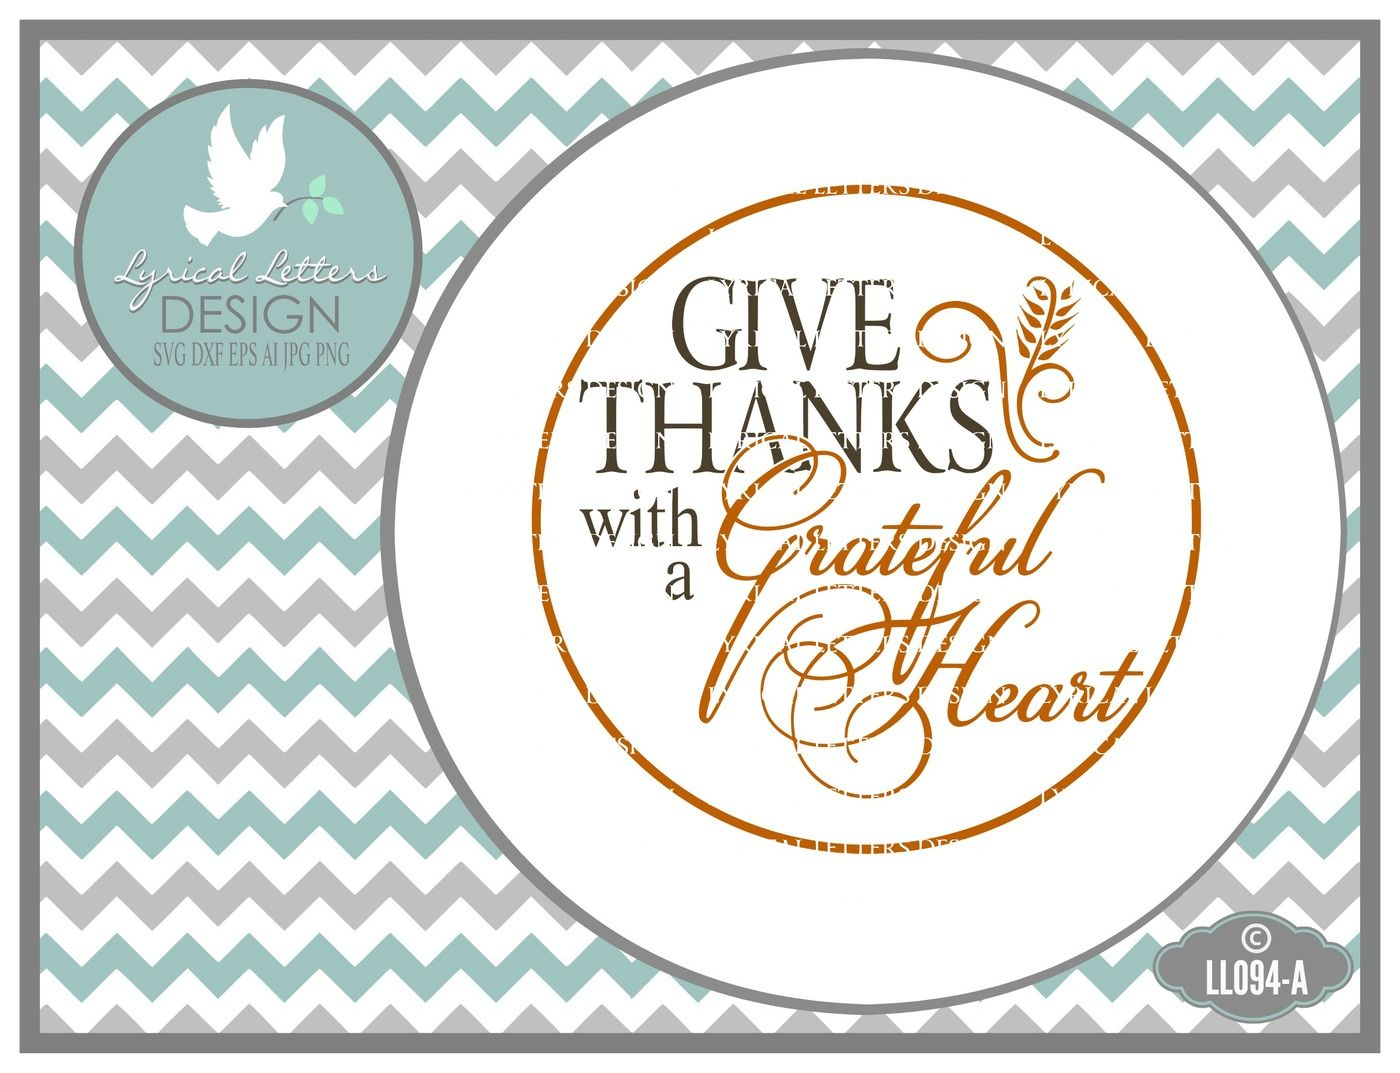 Give Thanks With A Grateful Heart Plate Design Svg Dxf Eps Ai Jpg